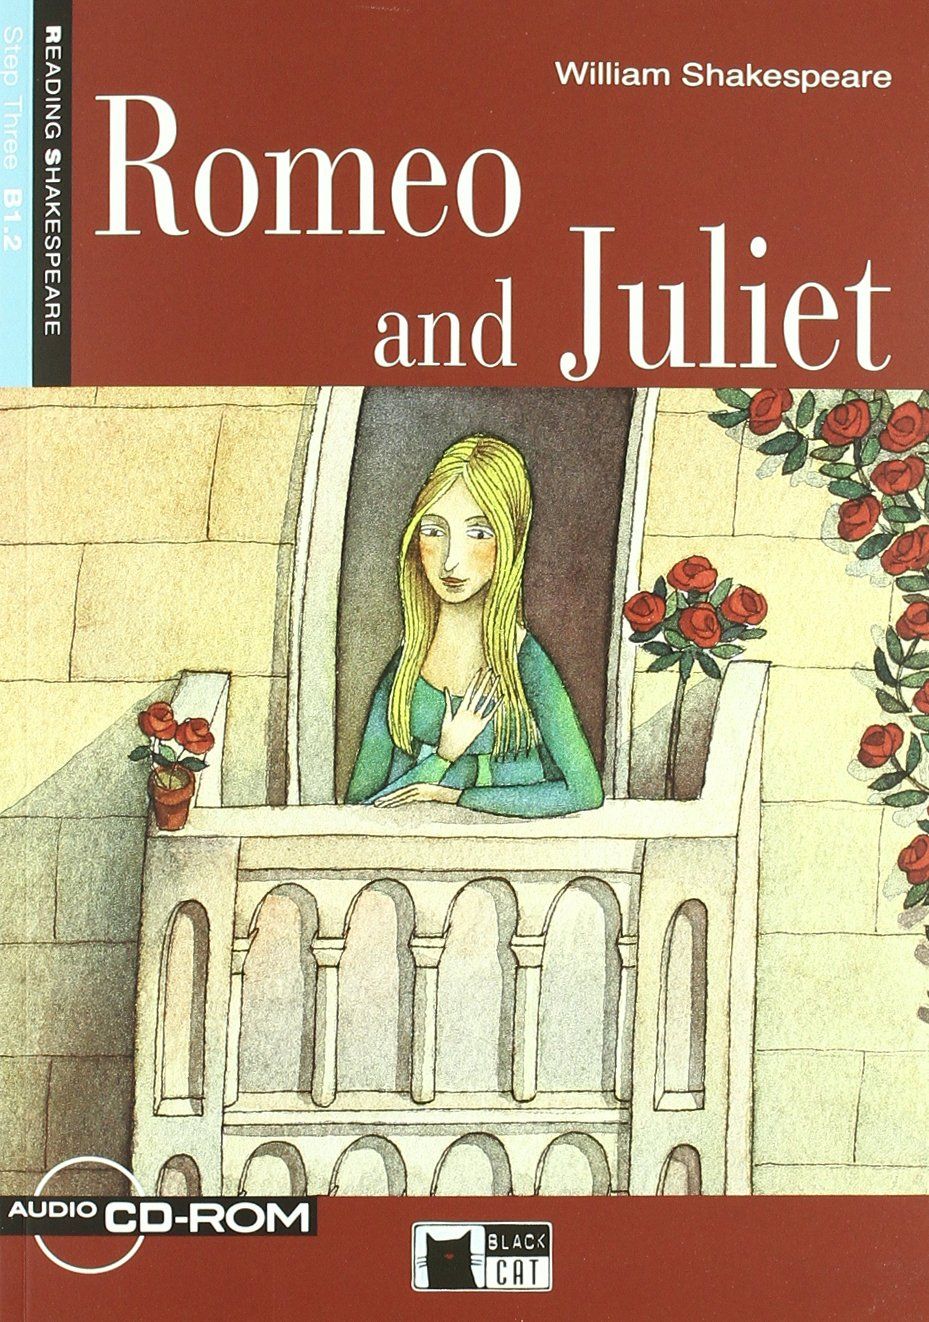 Romeo and Juliet (+ CD-ROM) zhou jianzhong ред oriental patterns and palettes cd rom